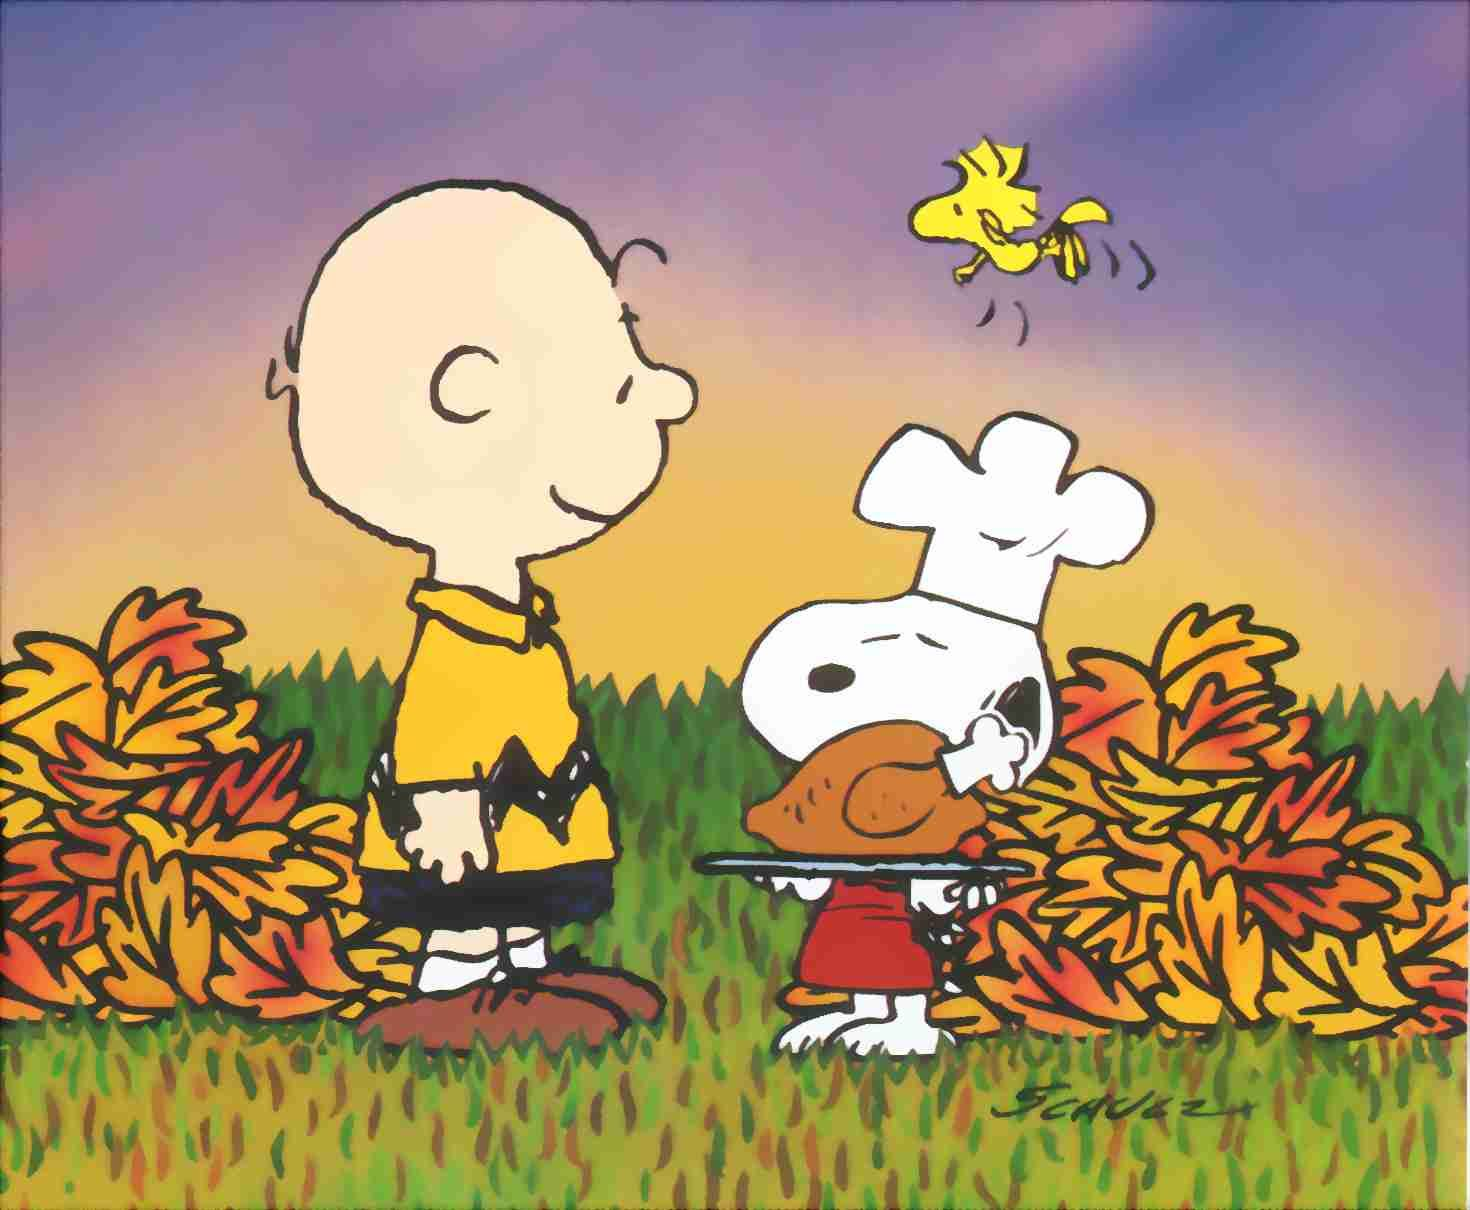 Snoopy Charlie Brown Thanksgiving Seasonal Wallpaper Image Thanksgiving Snoopy Charlie Brown Thanksgiving Funny Thanksgiving Pictures